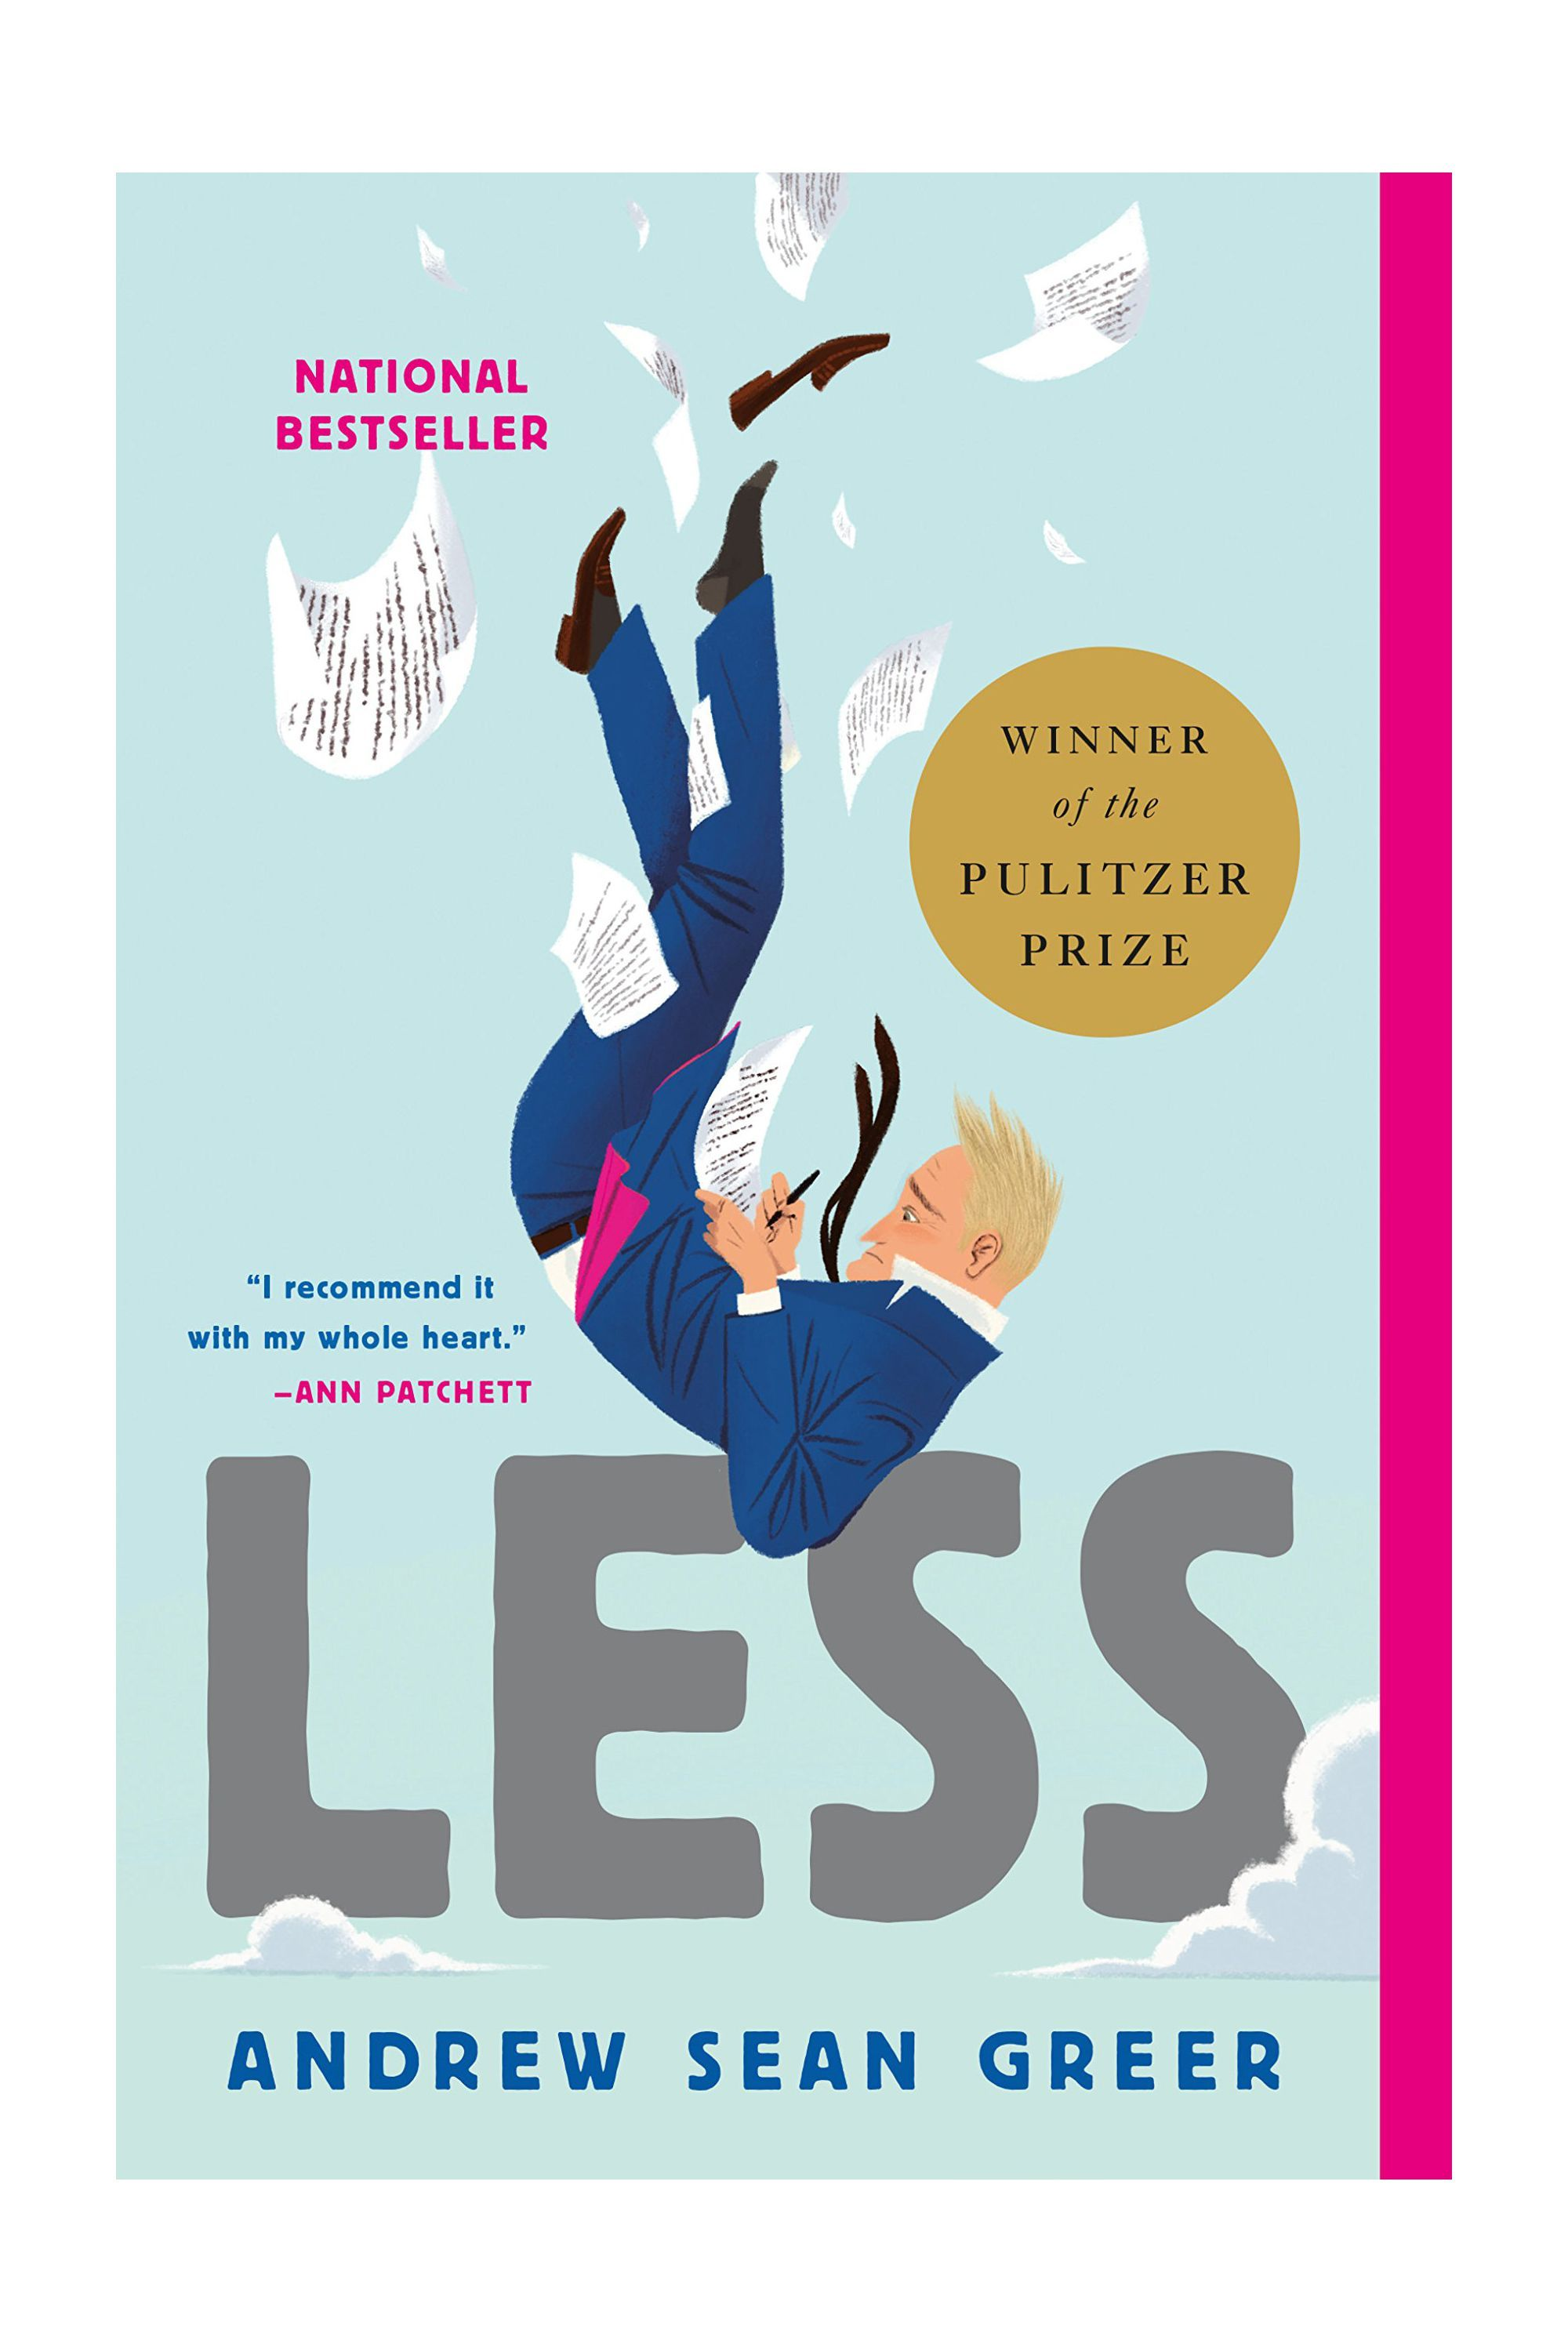 Less amazon.com $15.99 $12.38 (23% off) SHOP NOW Less is 2018's fiction winner of the Pulitzer Prize. If he hasn't read it already, the time is now.